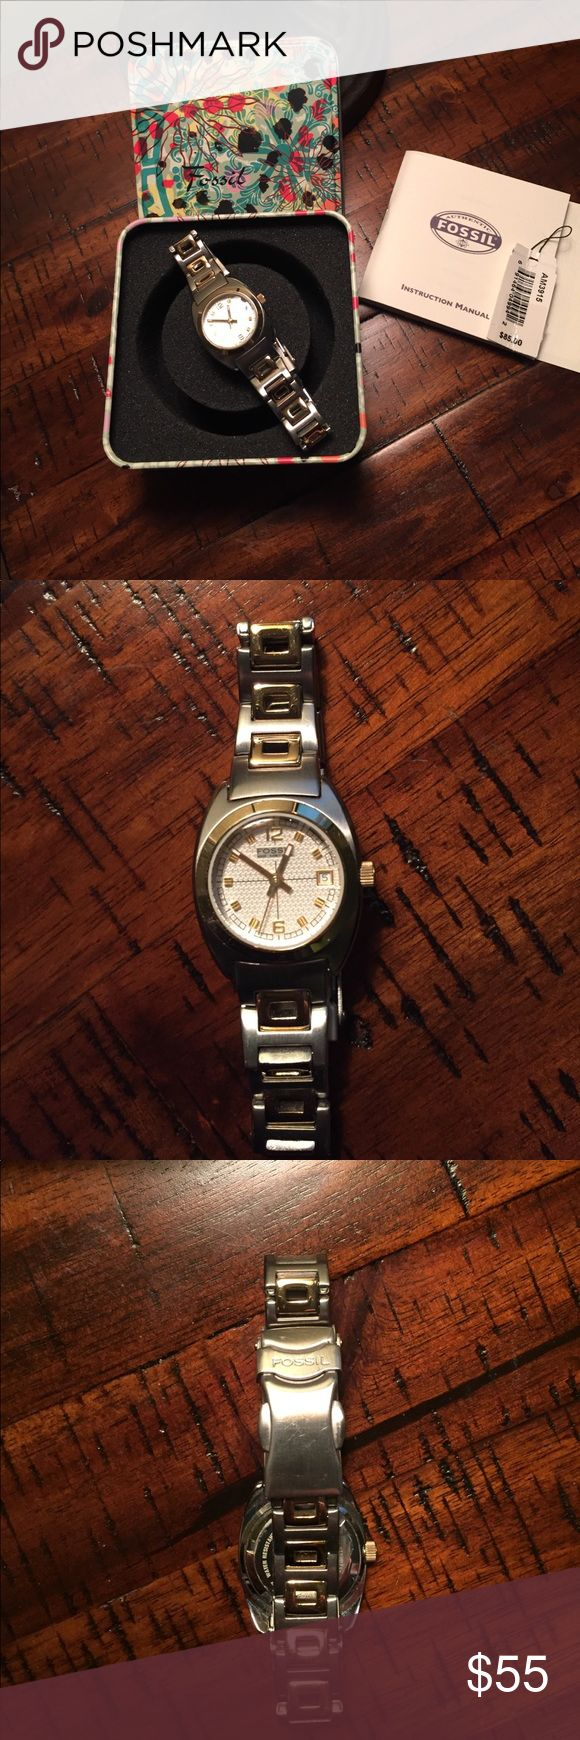 SALE 🎉Fossil Watch 2-tone Pretty 2-tone watch. Completely with tin container and paperwork. A few scratches on back in photo Fossil Jewelry